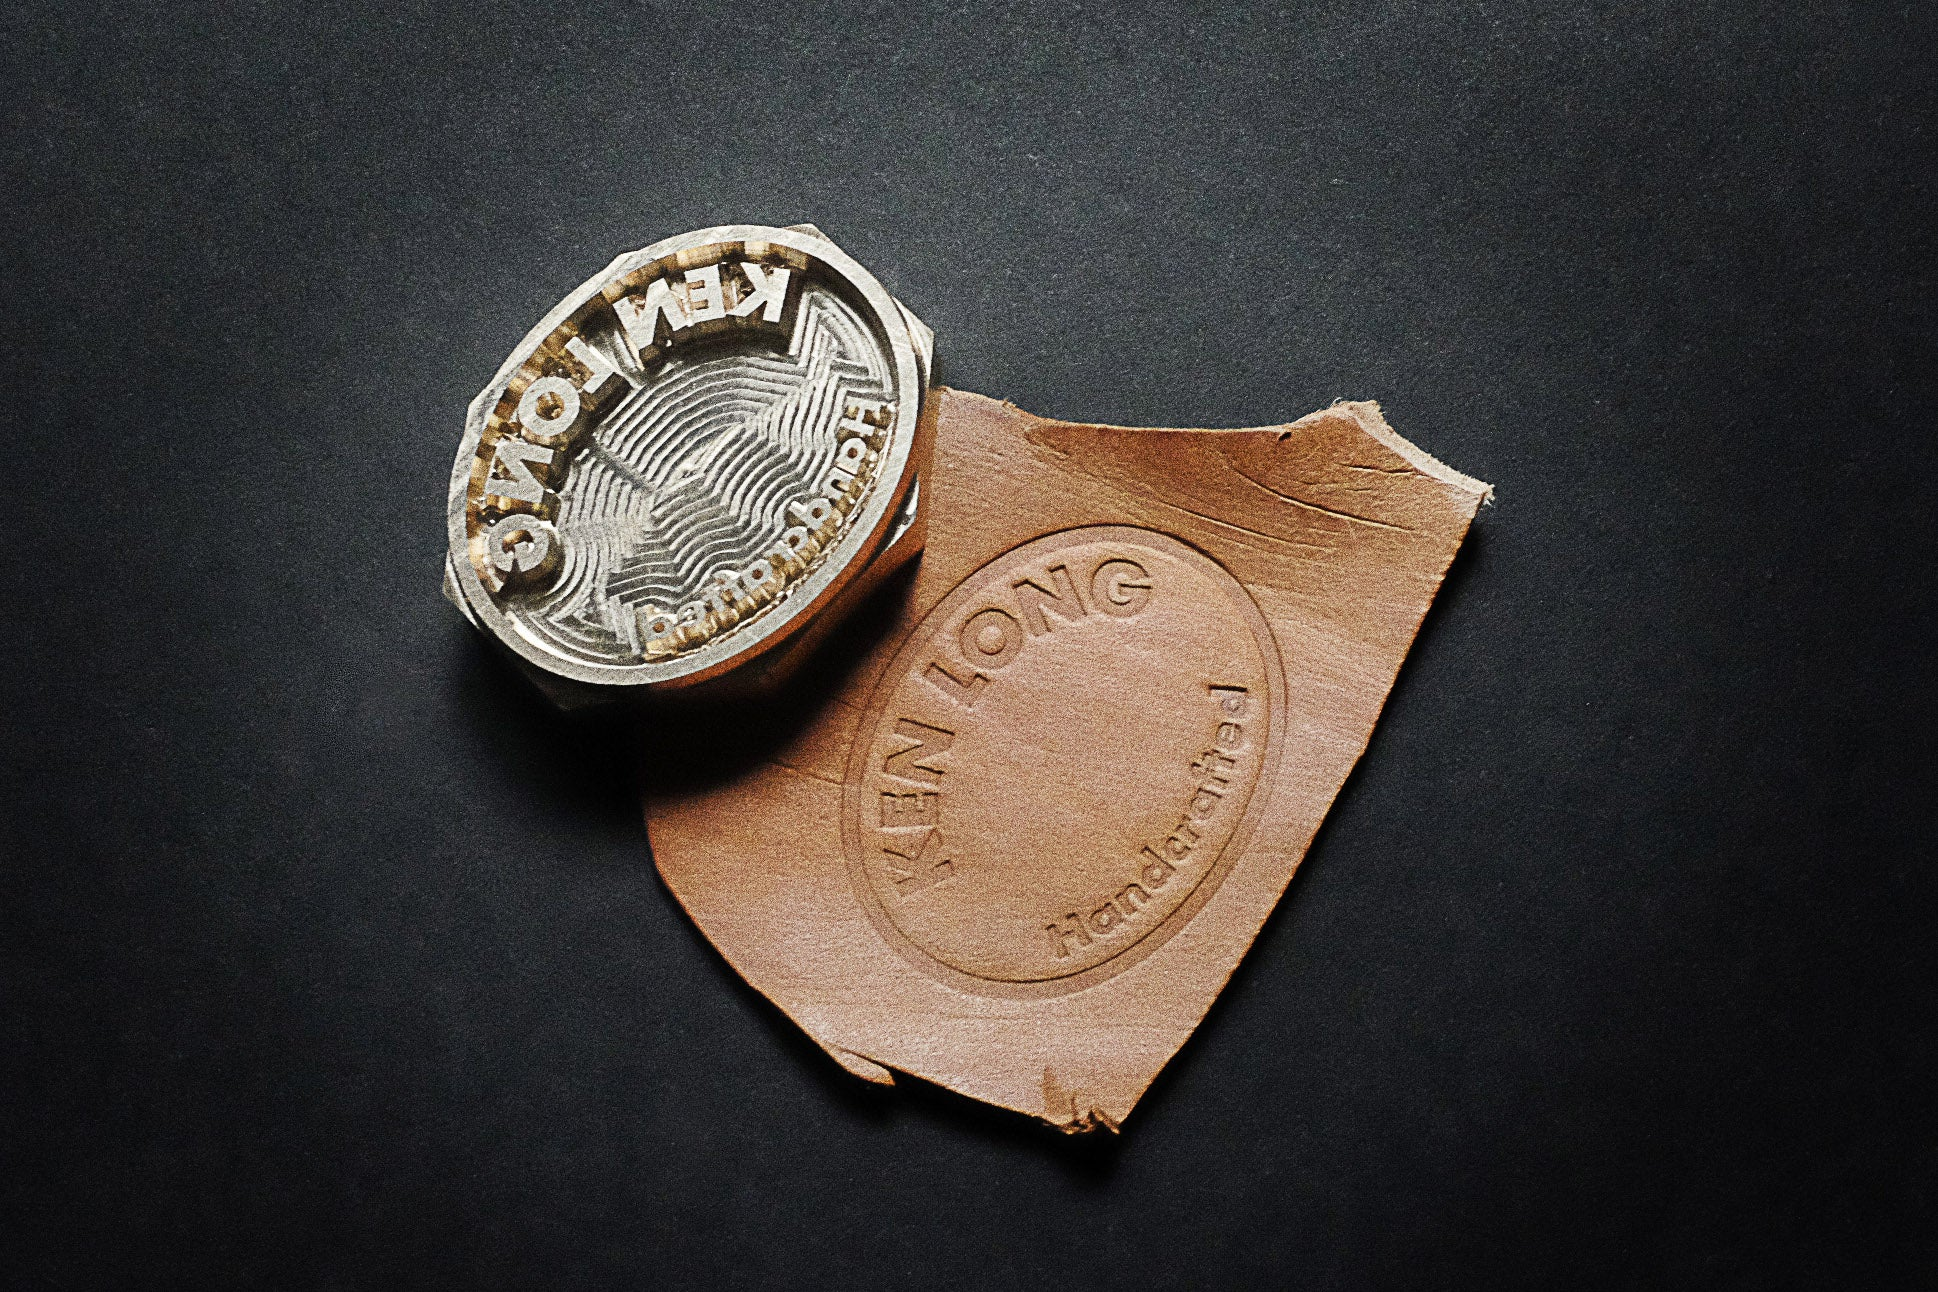 Get custom-made leather stamps for your leather projects on AM-leathercraft.com